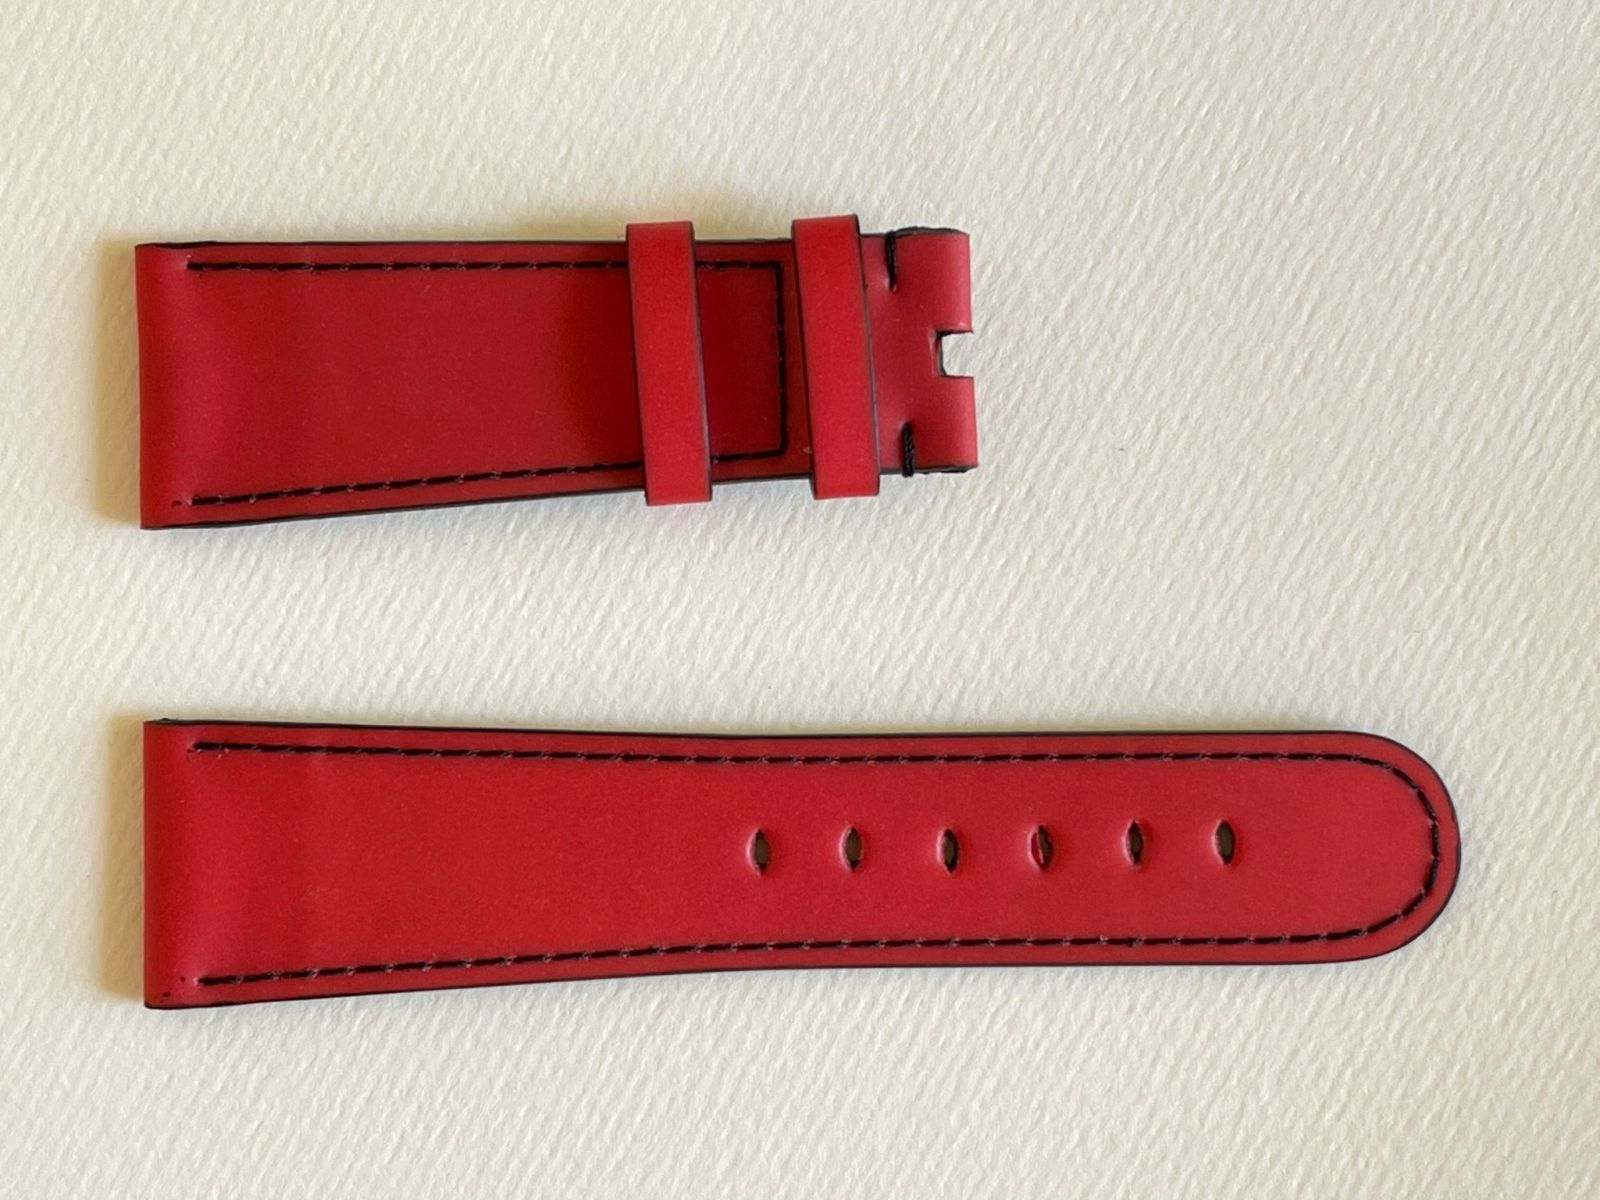 Red Recycled Rubber Strap 16mm, 18mm, 19mm, 20mm, 21mm, 22mm, 24mm General style